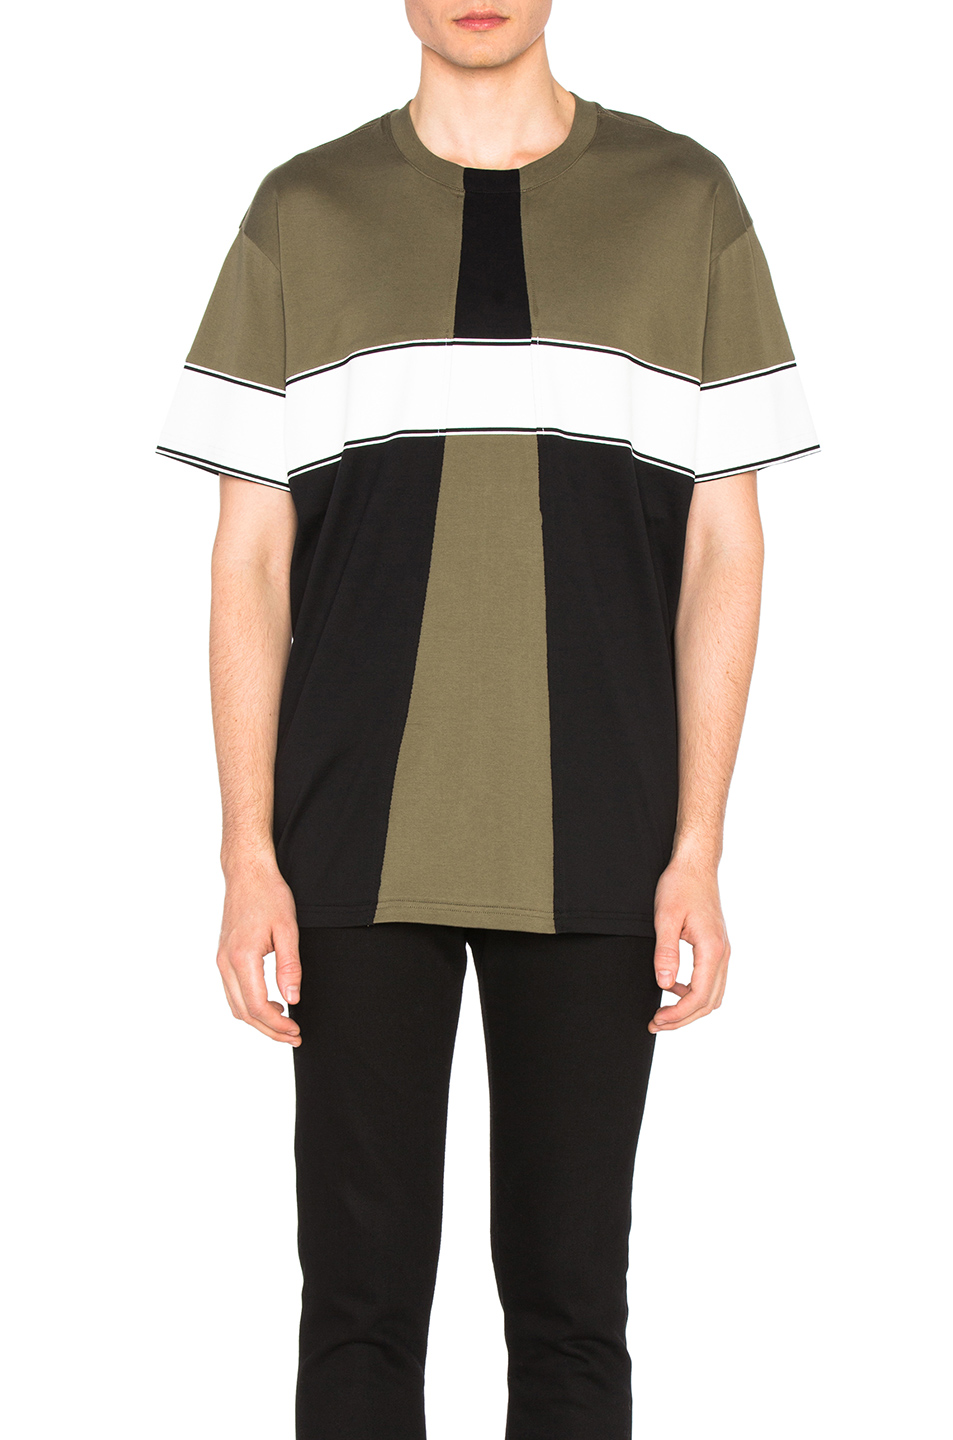 Givenchy Colorblock Tee in Green,Black